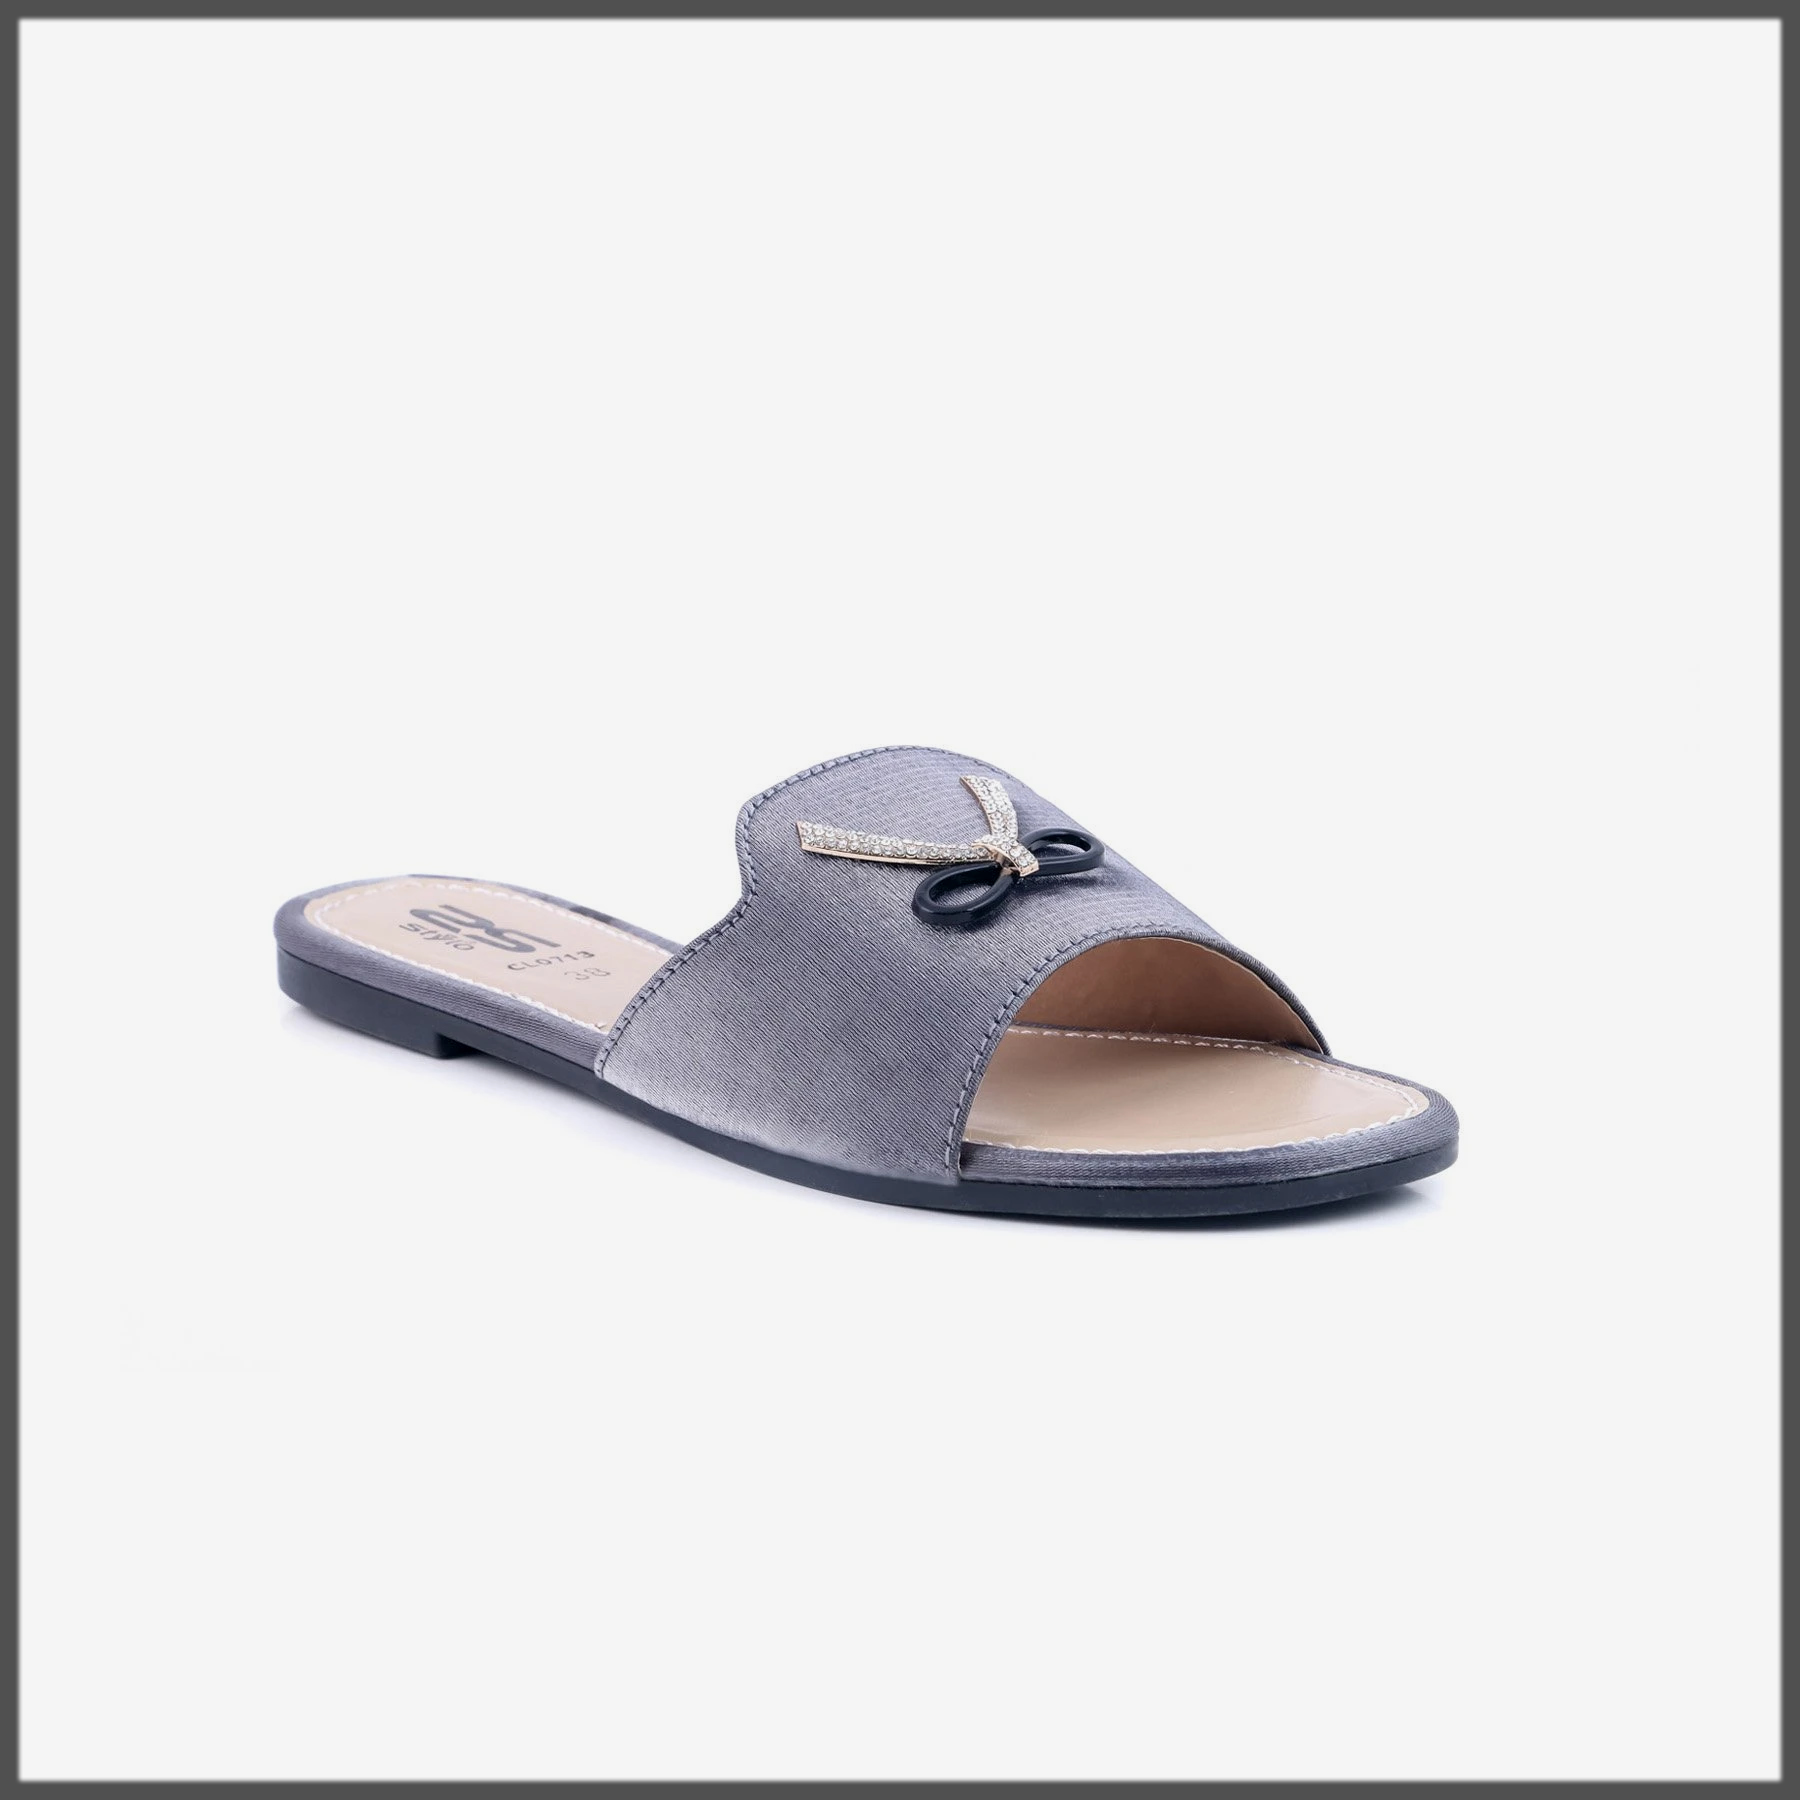 appealing summer chappal for women